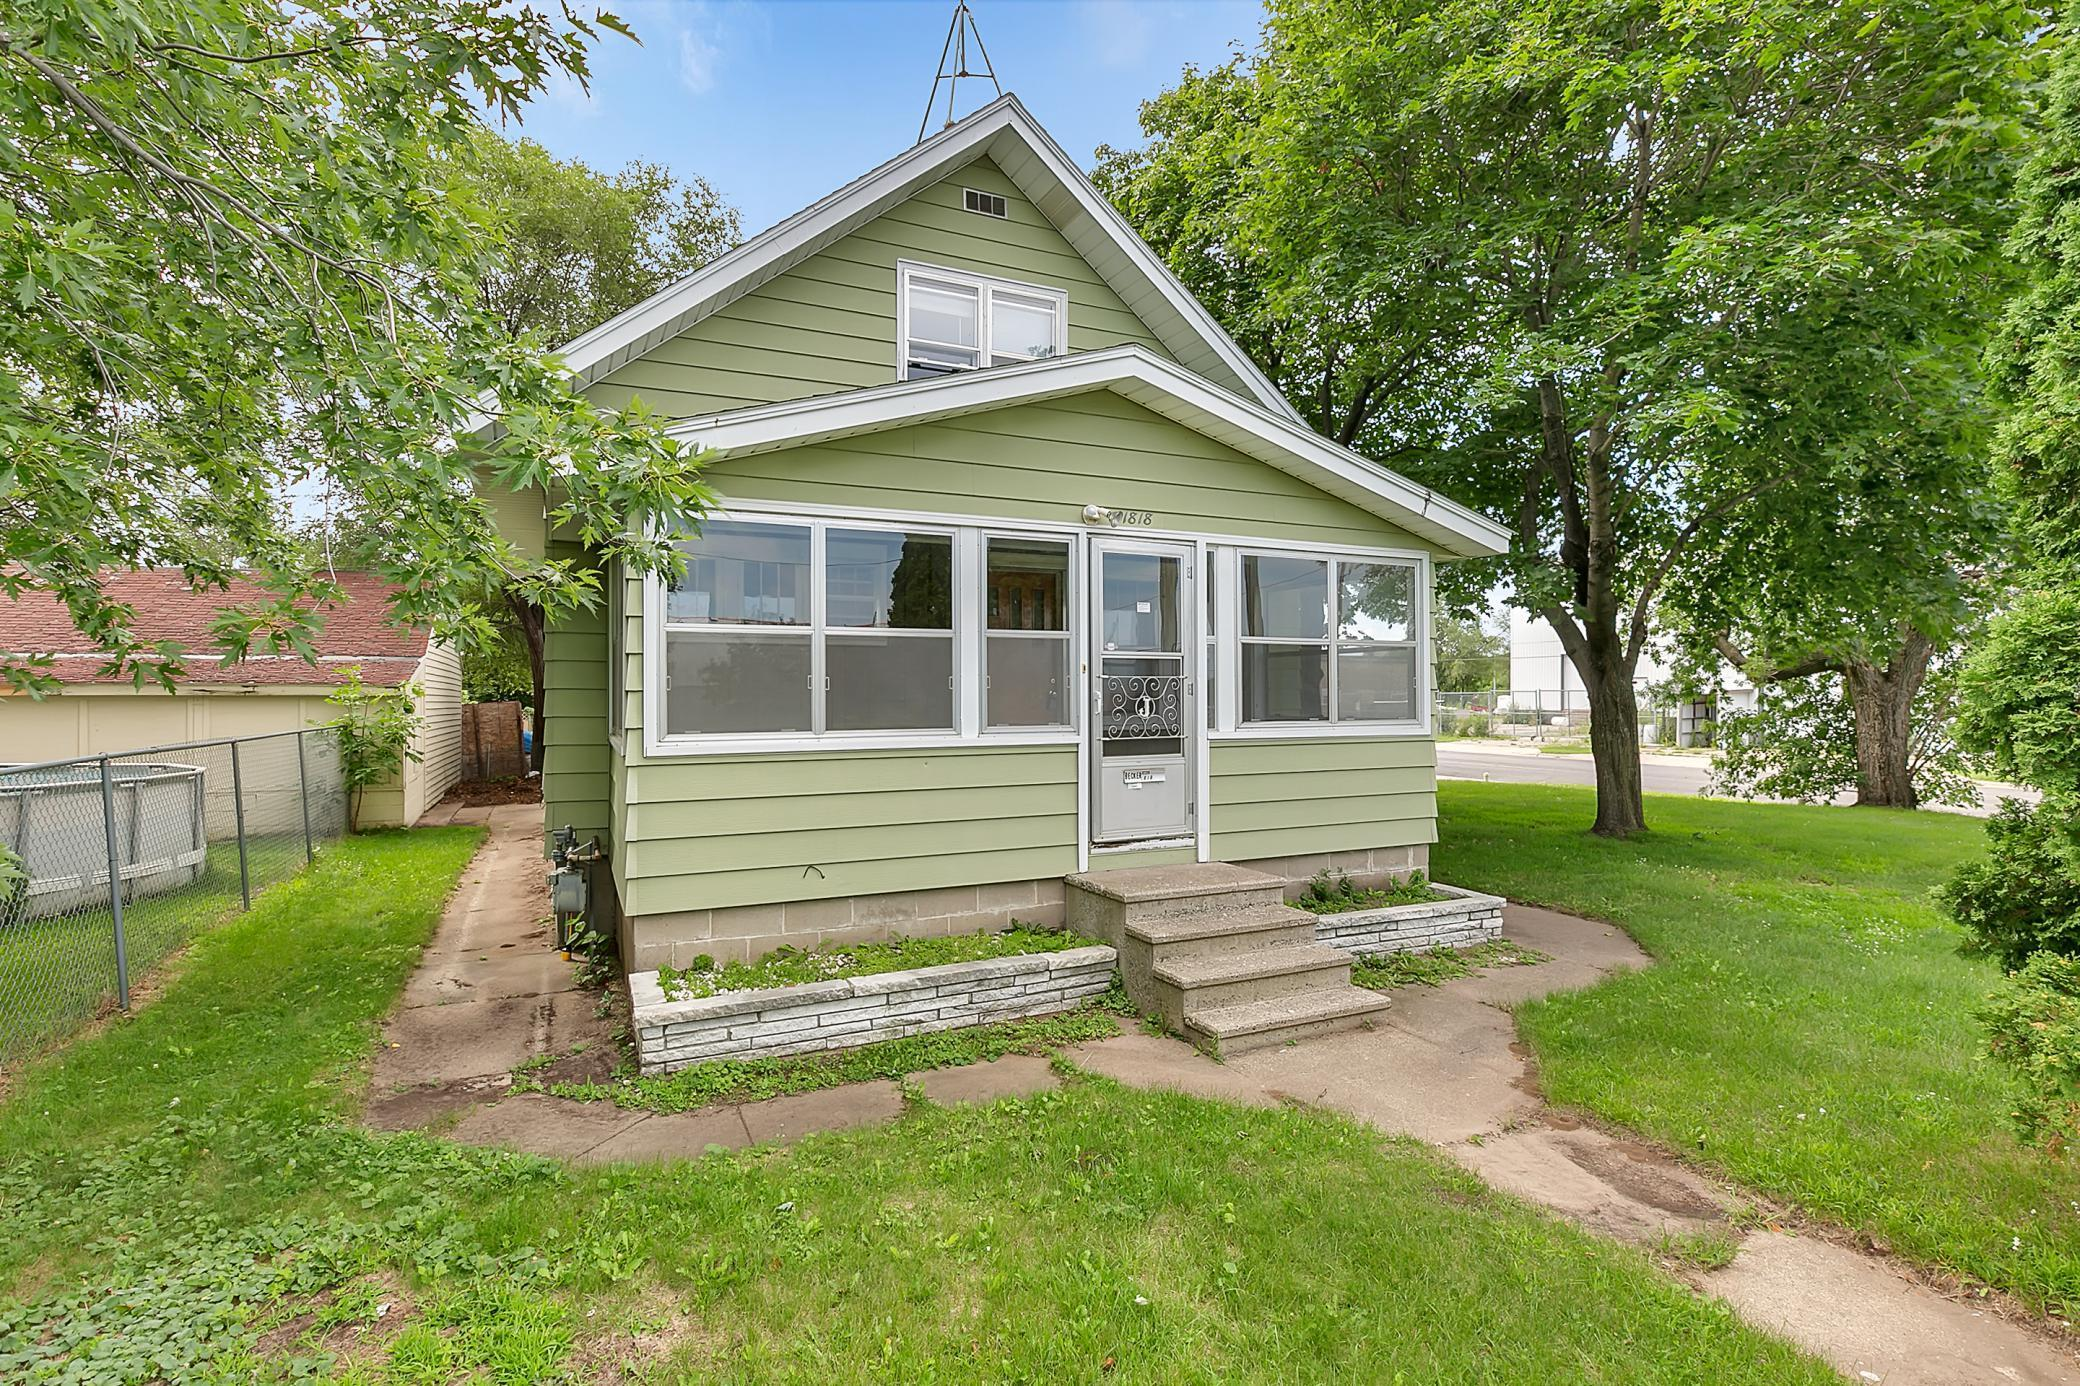 Large three bedroom home on corner lot.  Two bedrooms on mail floor with orginal hardwood floors.  Large finished basement makes a great space for a lower level living room or office.  Three season front porch and detached one stall garage.  Only a few minute's walk to groceries, restaurants, and shops.  Quick access to downtown, parks, and major shopping areas.  The perfect home for an owner occupant or rental property.